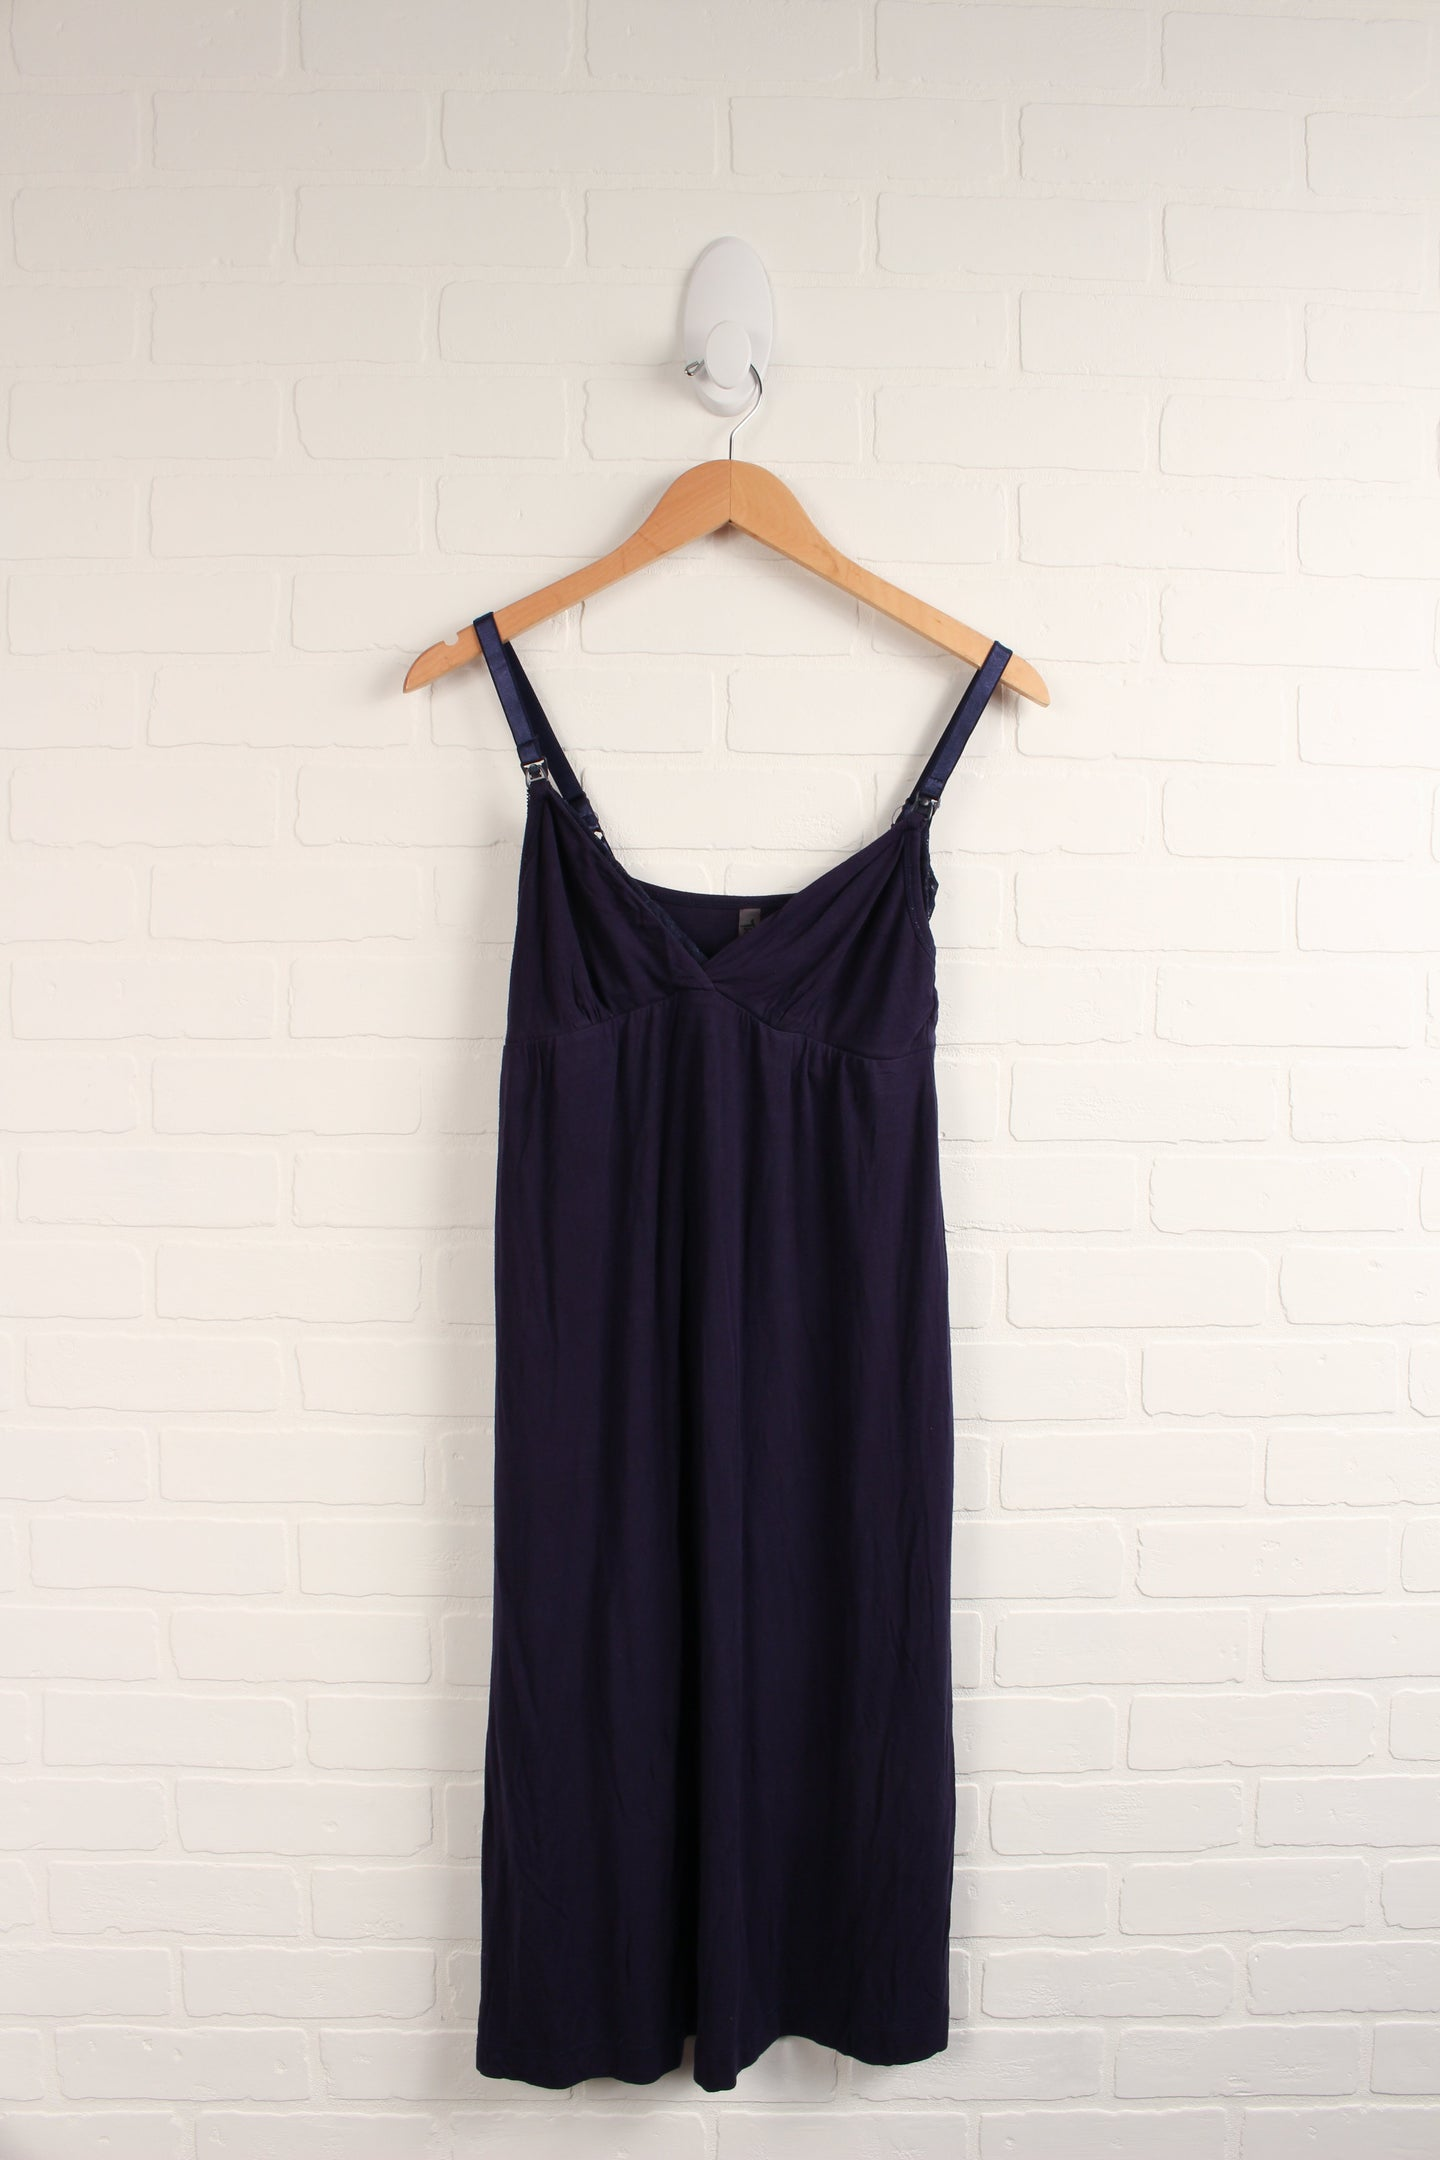 Navy Nursing Slip/Nightgown (Maternity Size M)